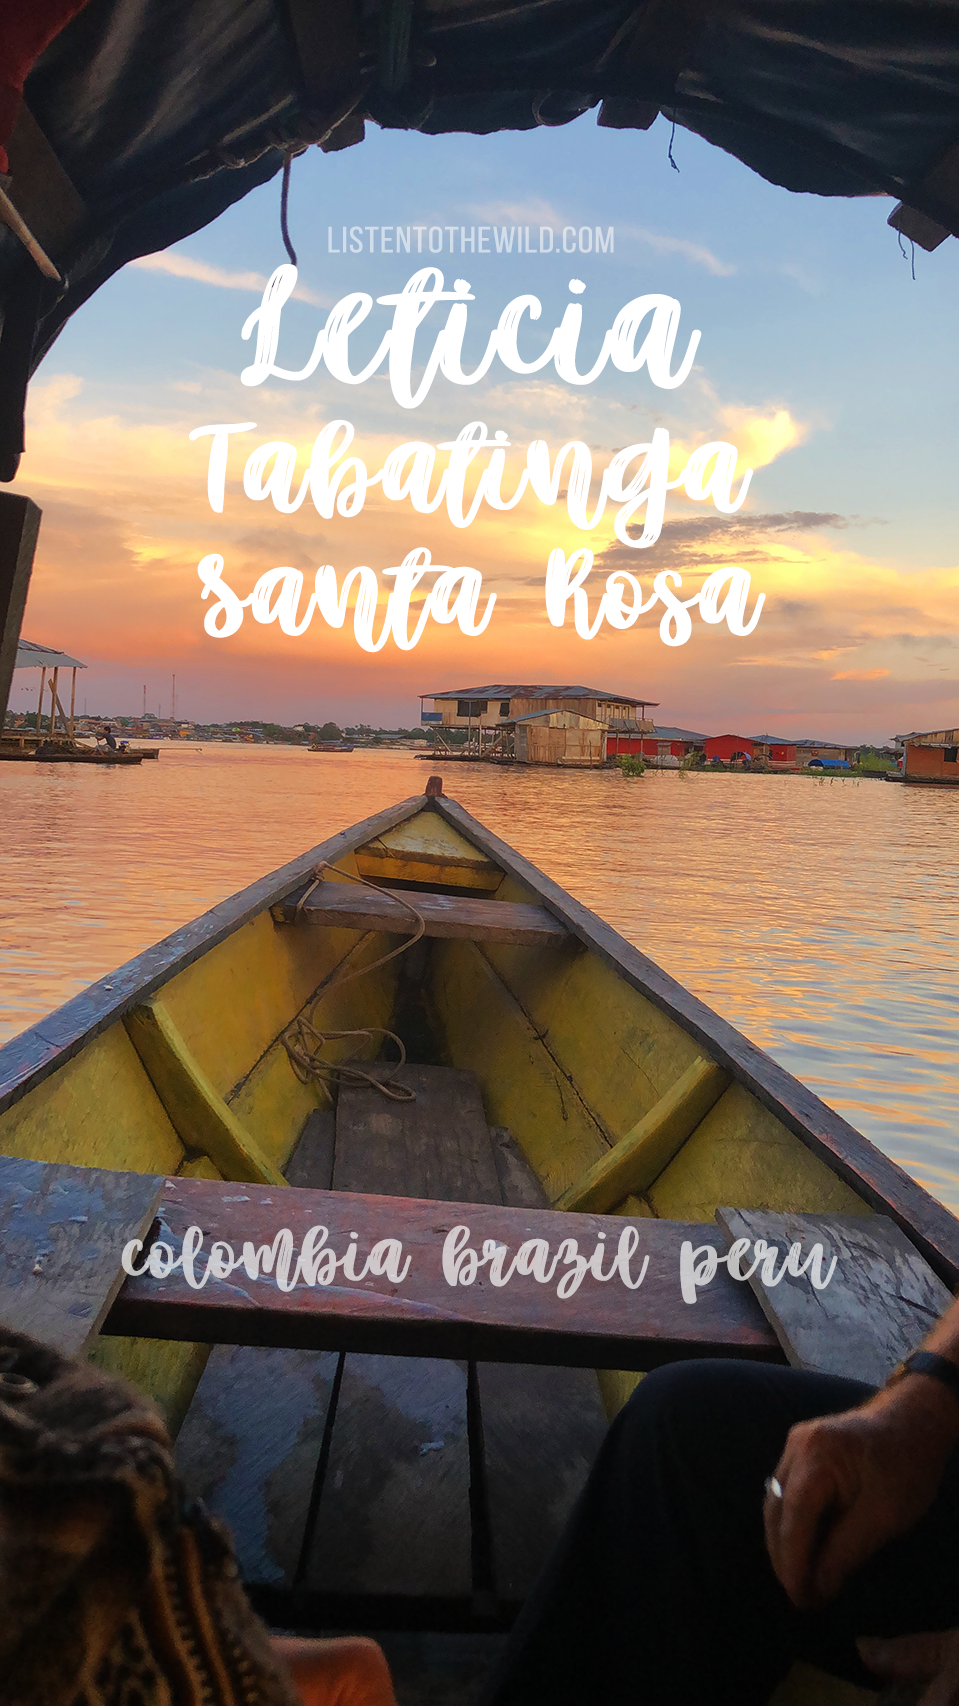 Travel blog guide to Leticia, Colombia, Tabatinga, Brazil and Santa Rosa, Peru